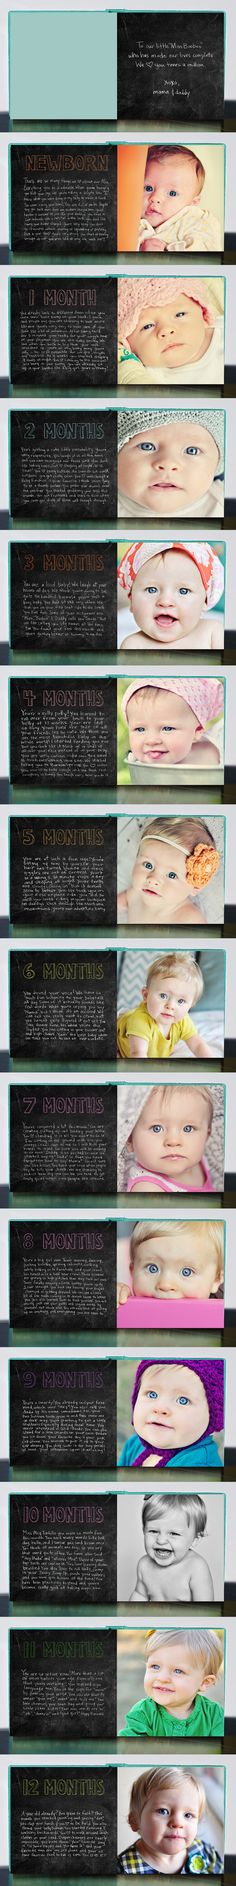 Easy baby book instead of worrying about putting together a million pictures